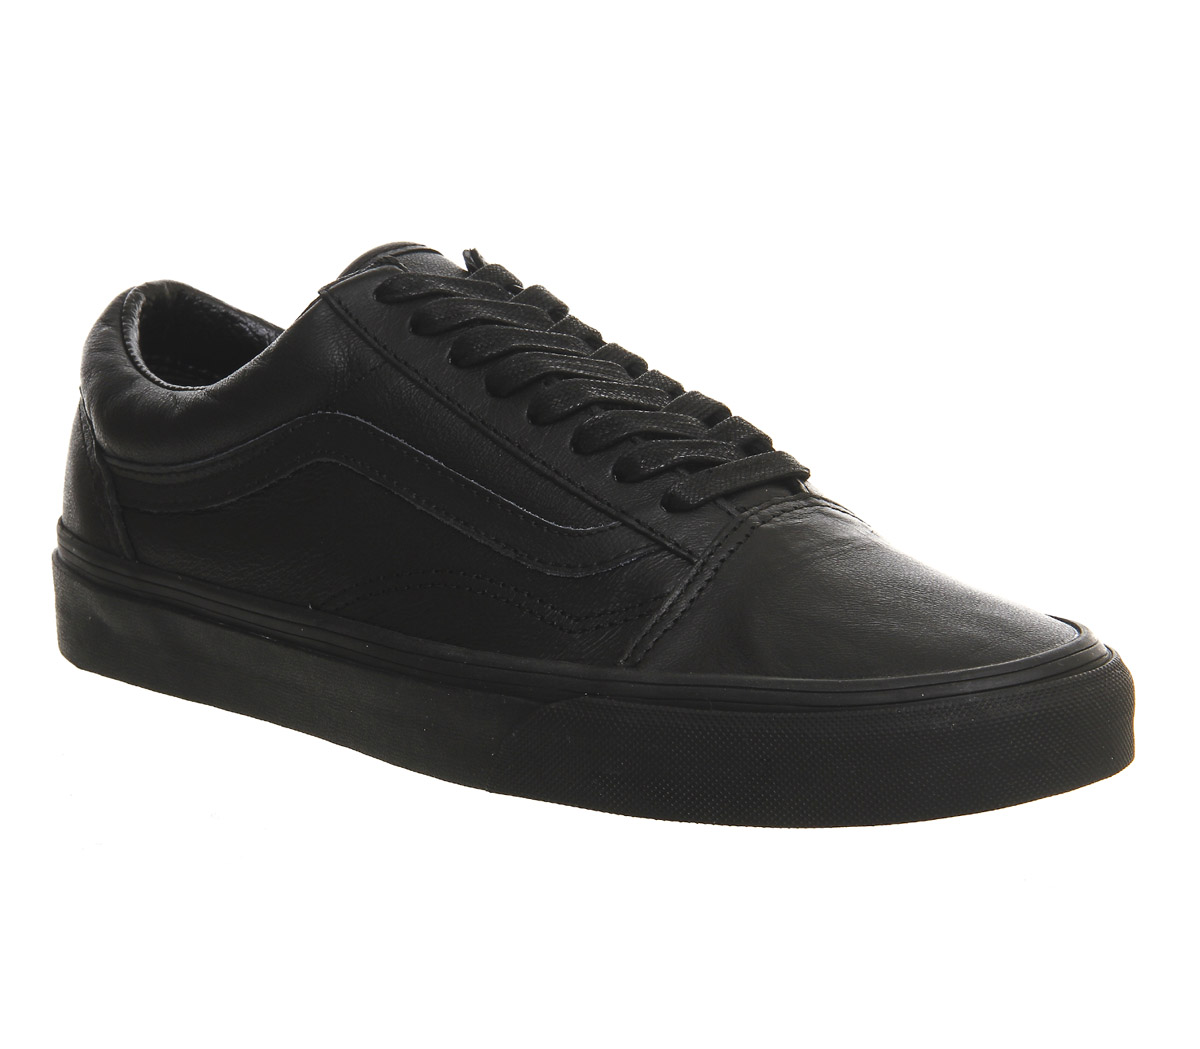 vans old skool trainers in black